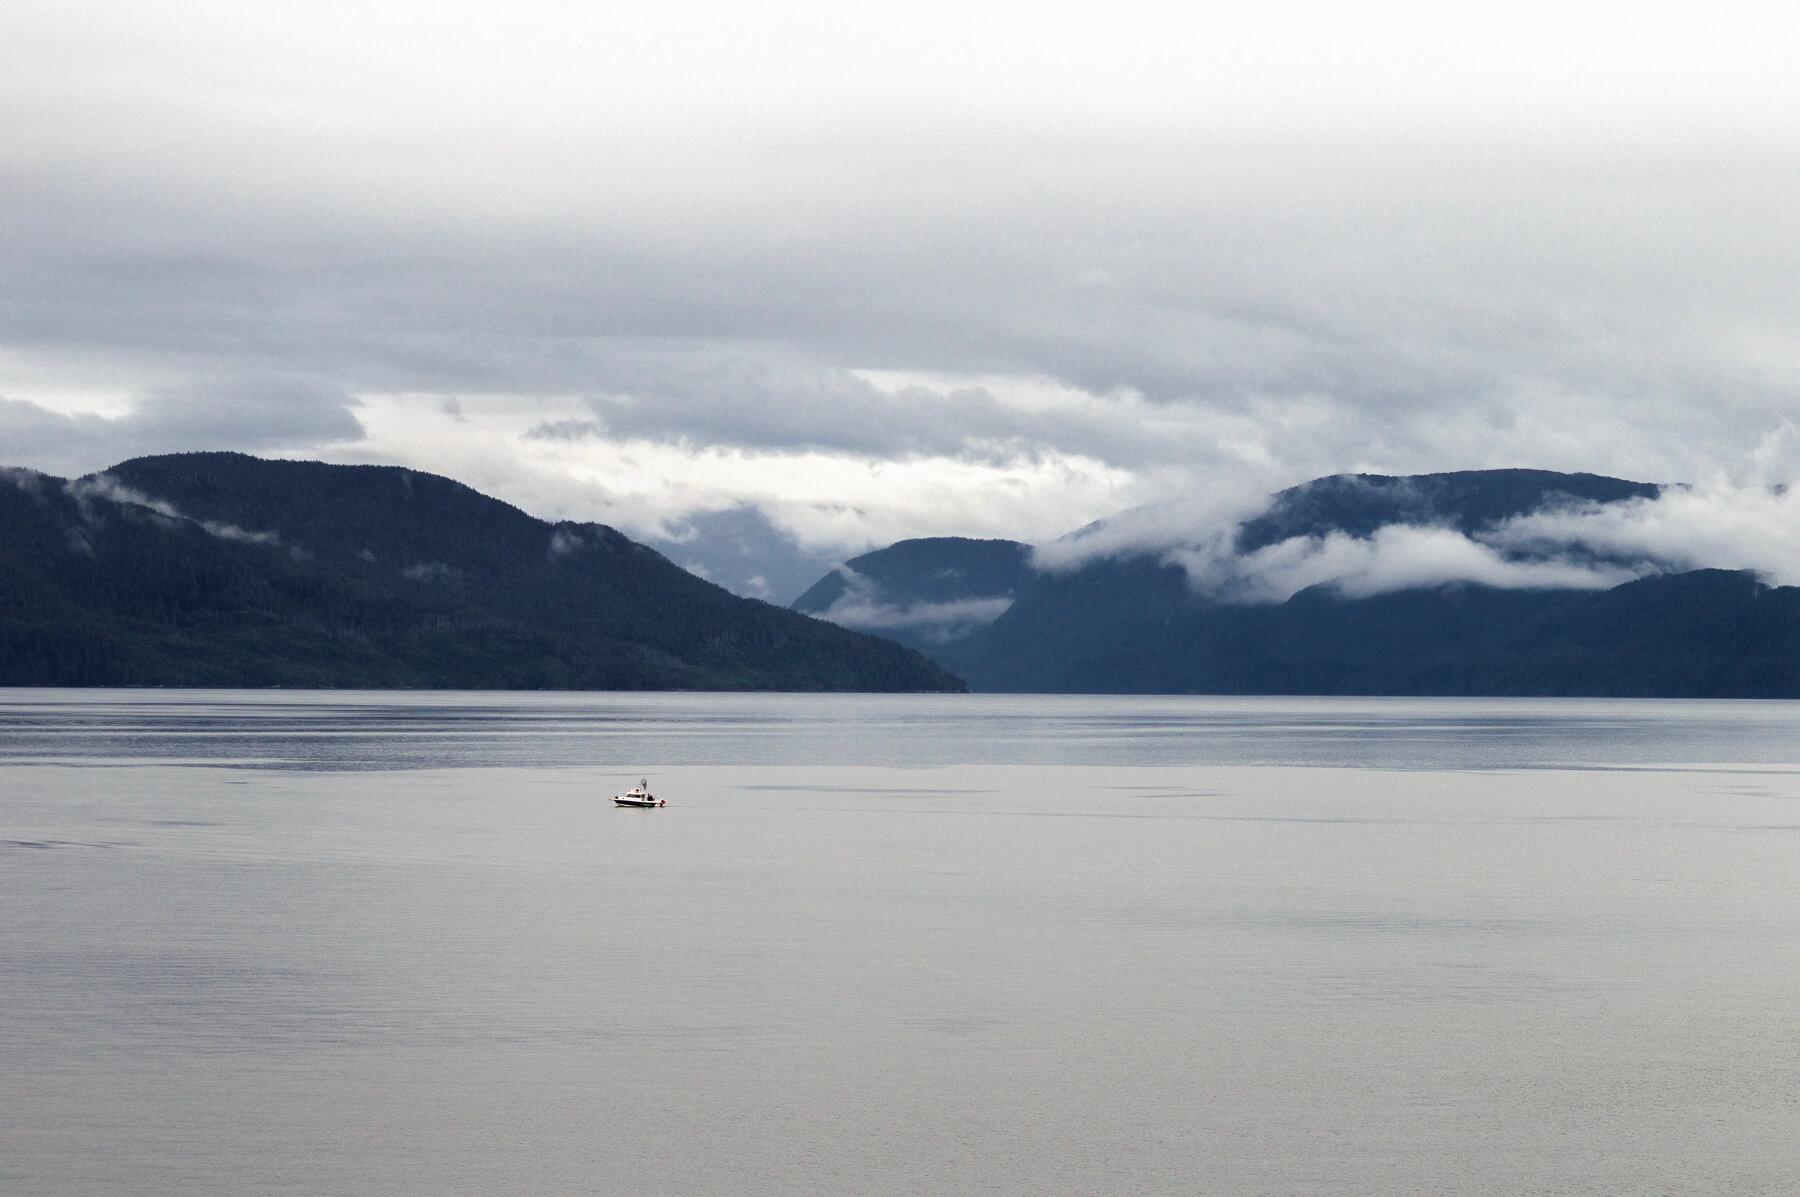 View of Alaska's coastline from a Cruise Ship